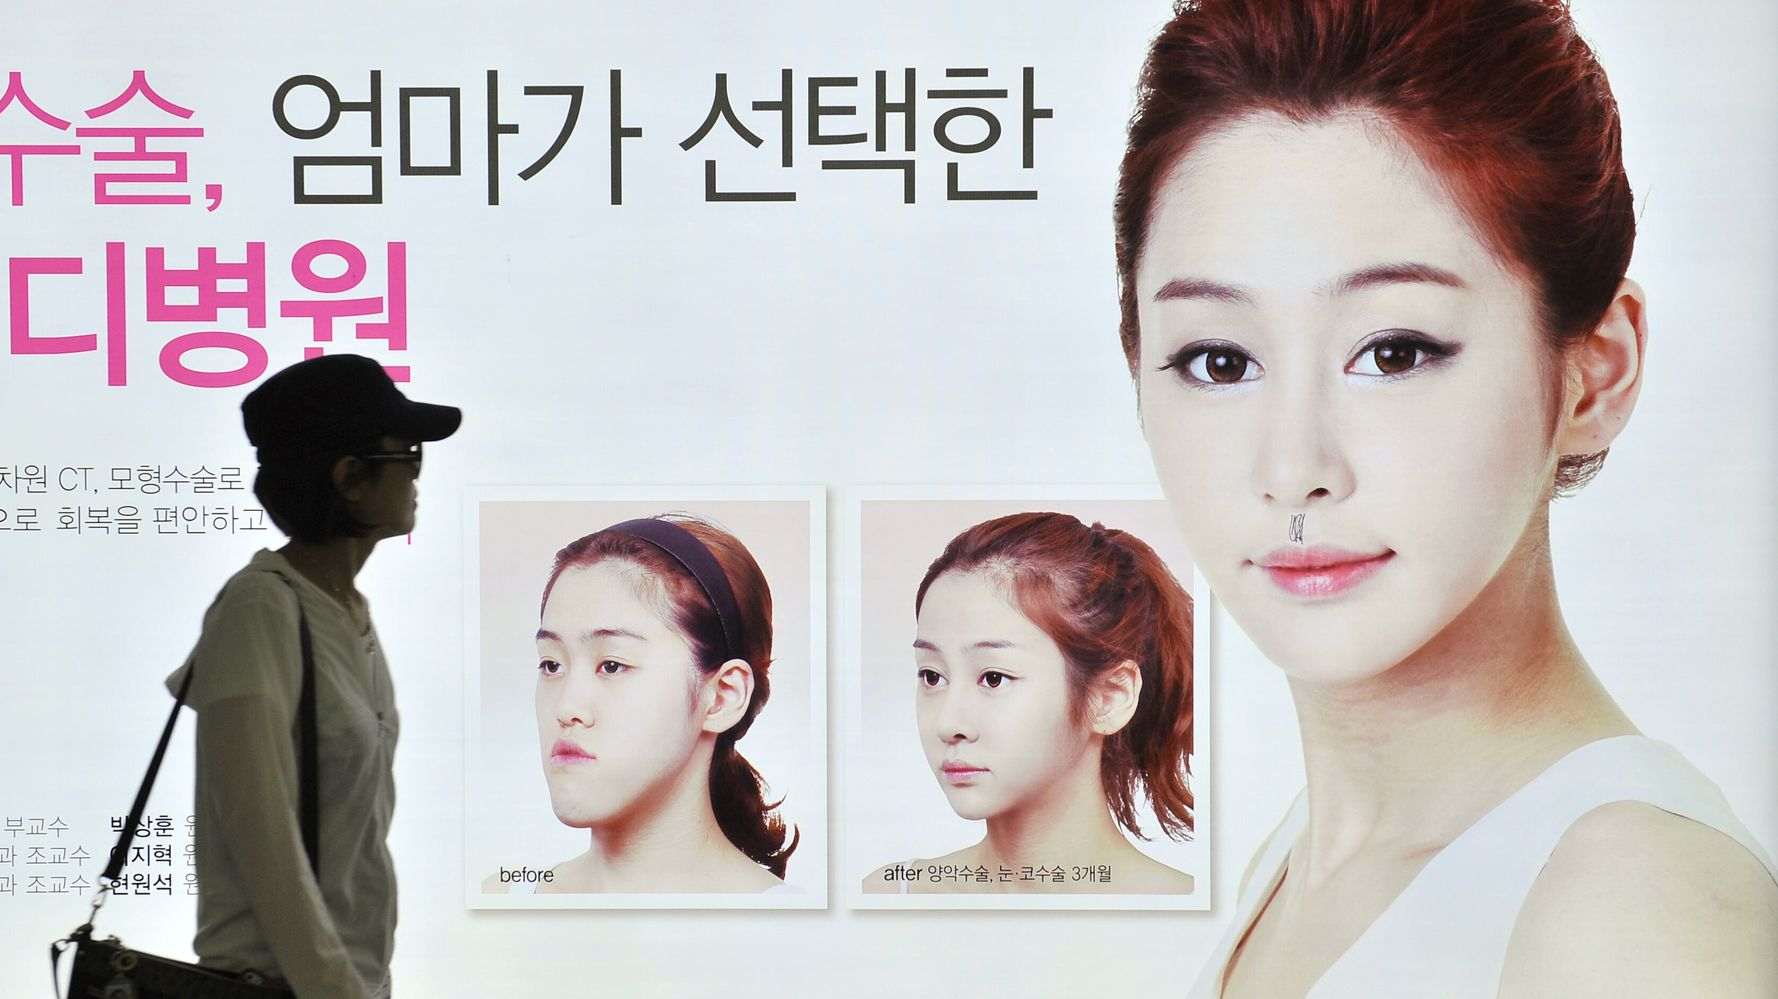 South Korea S Plastic Surgery Boom A Quest To Be Above Normal